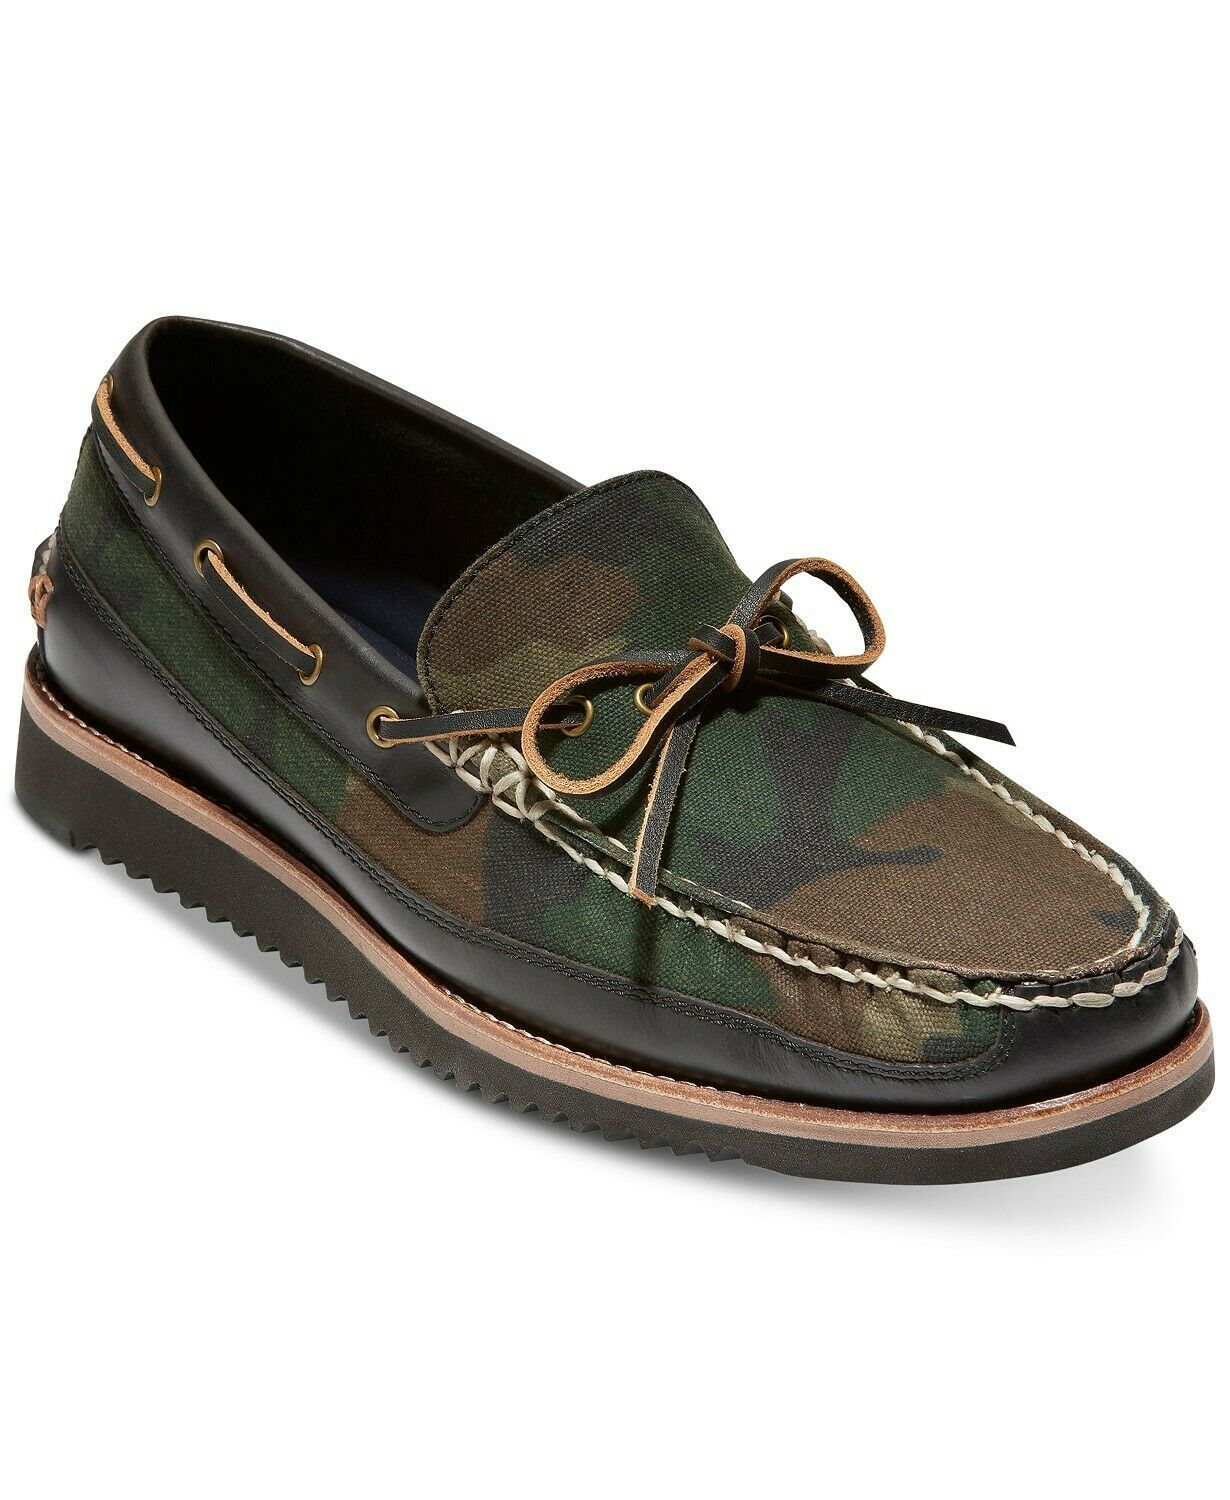 Primary image for Men's Cole Haan Pinch Rugged Camp Moccasins Boat Shoes Camo Size US 9M